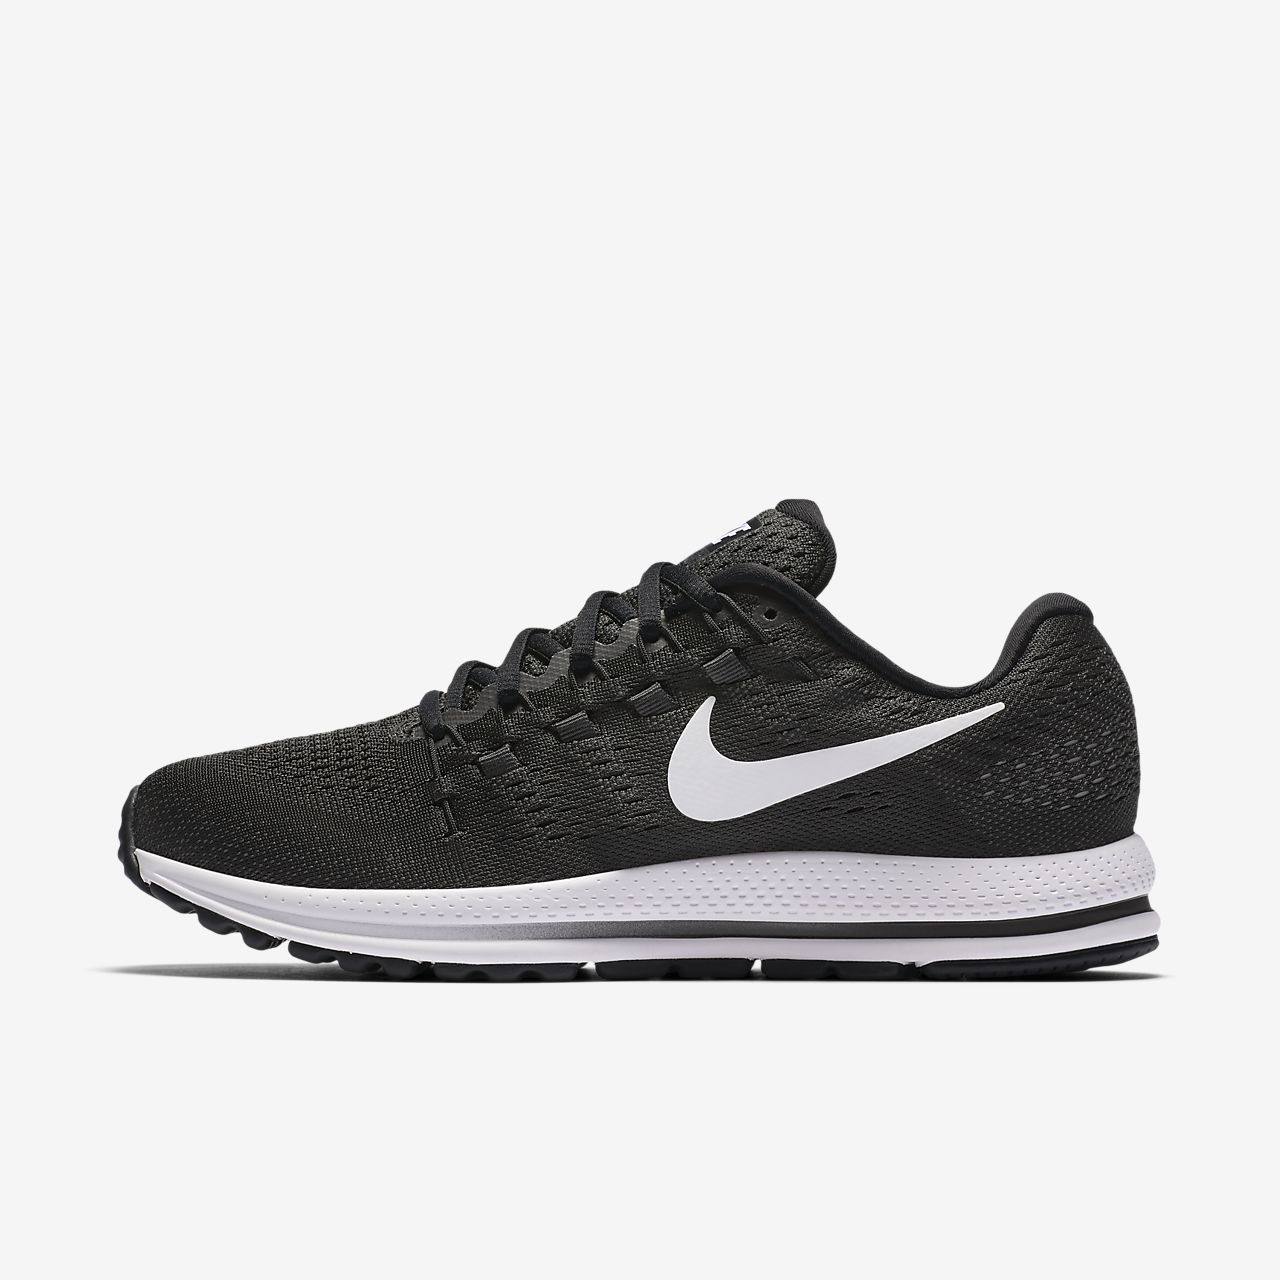 Nike Air Zoom Vomero 12 Men Running Shoe